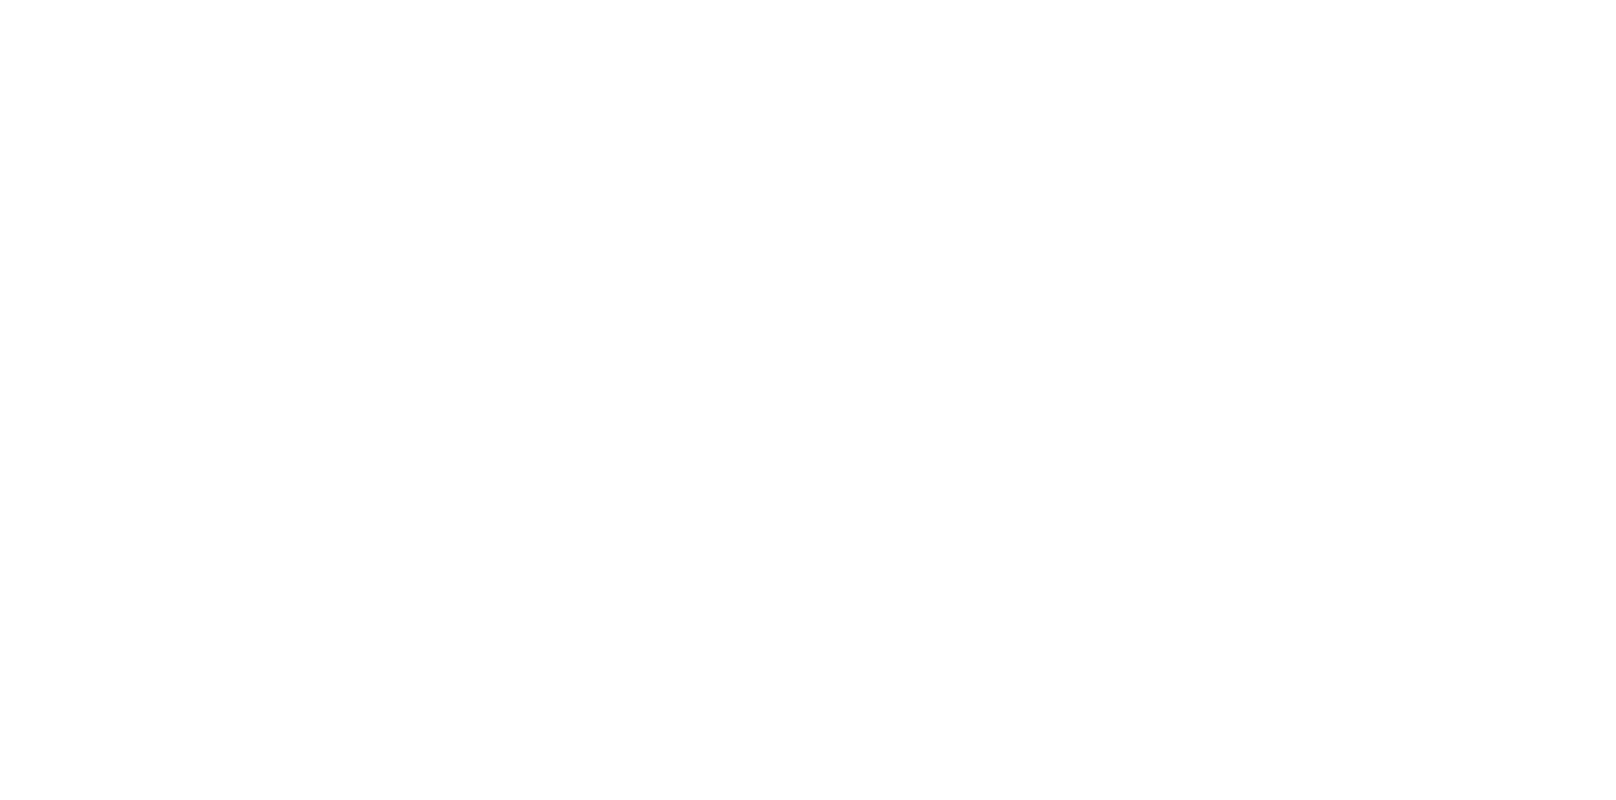 Master Builders Gold Coast 2014 Finalist